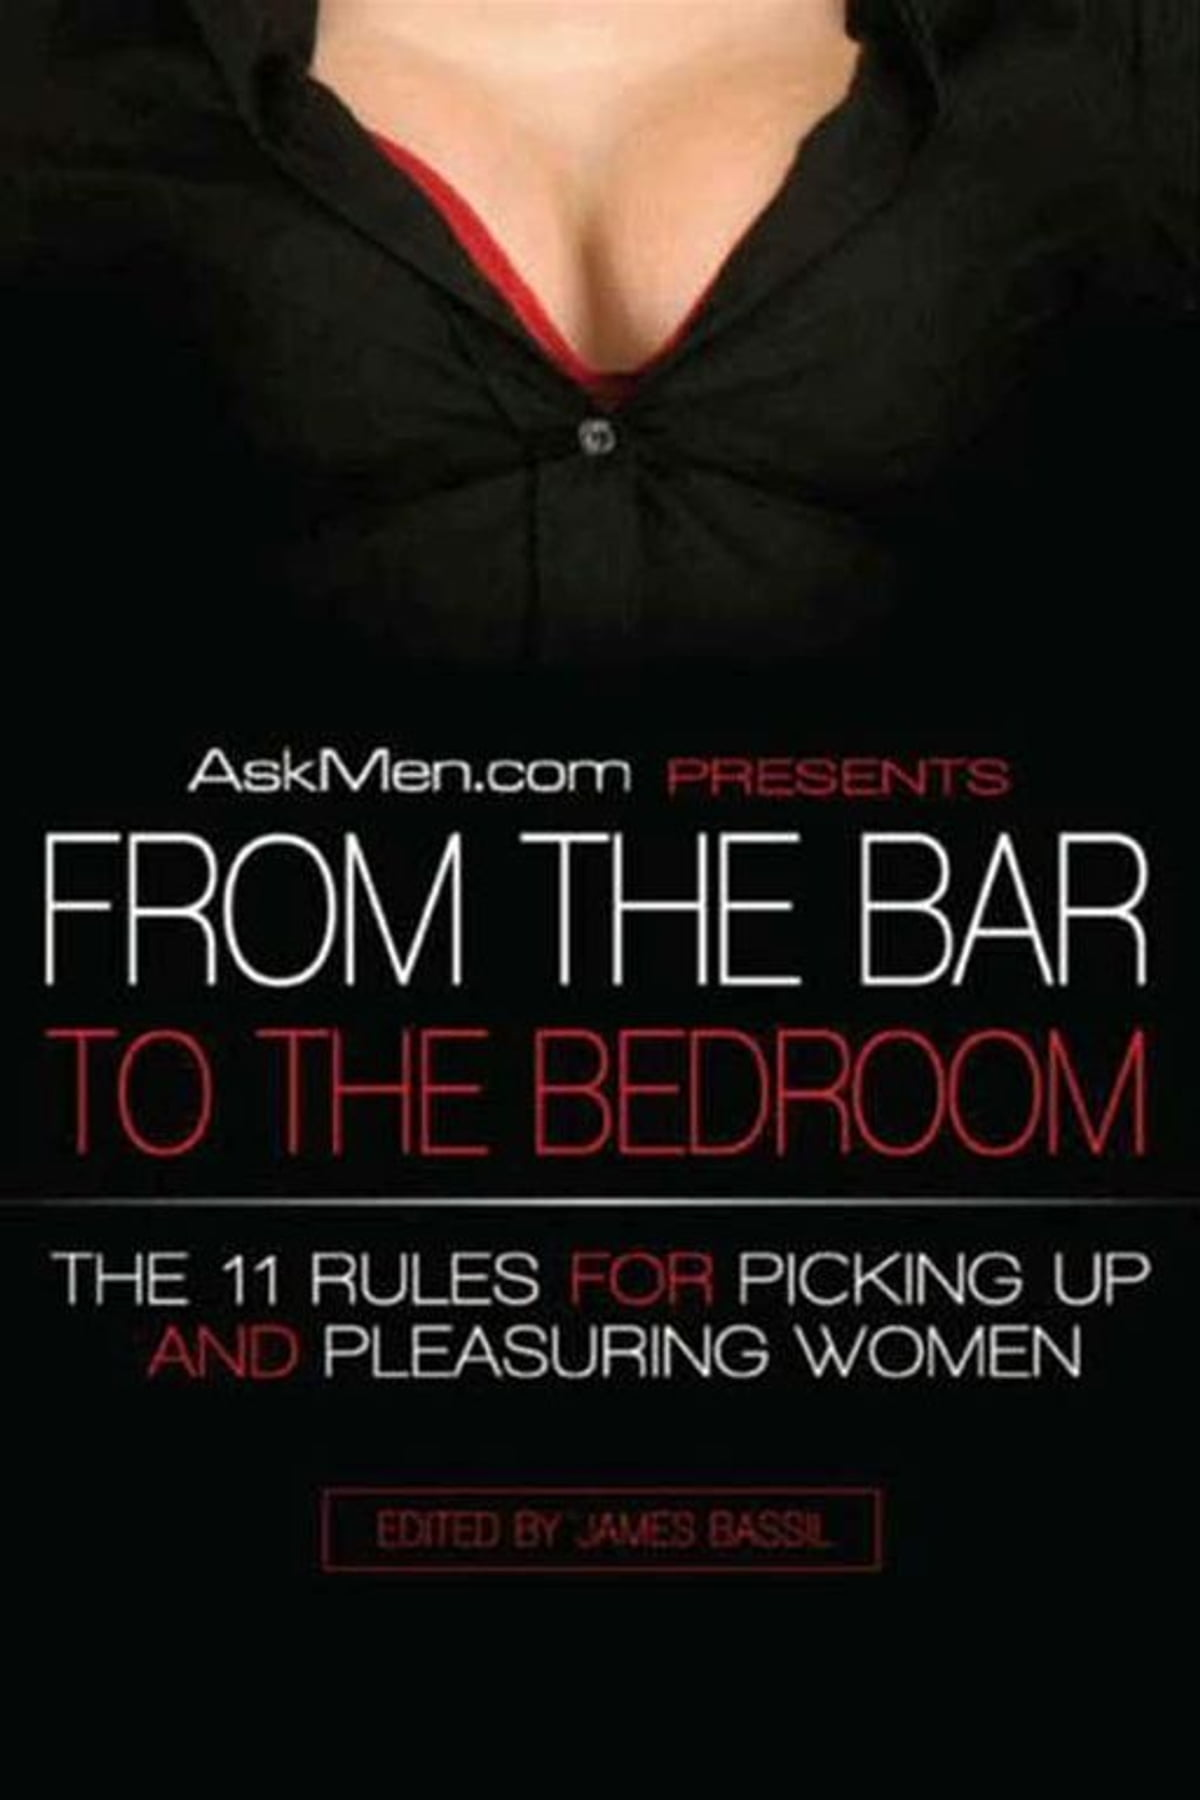 Askmen Com Presents From The Bar To The Bedroom Ebook By border=